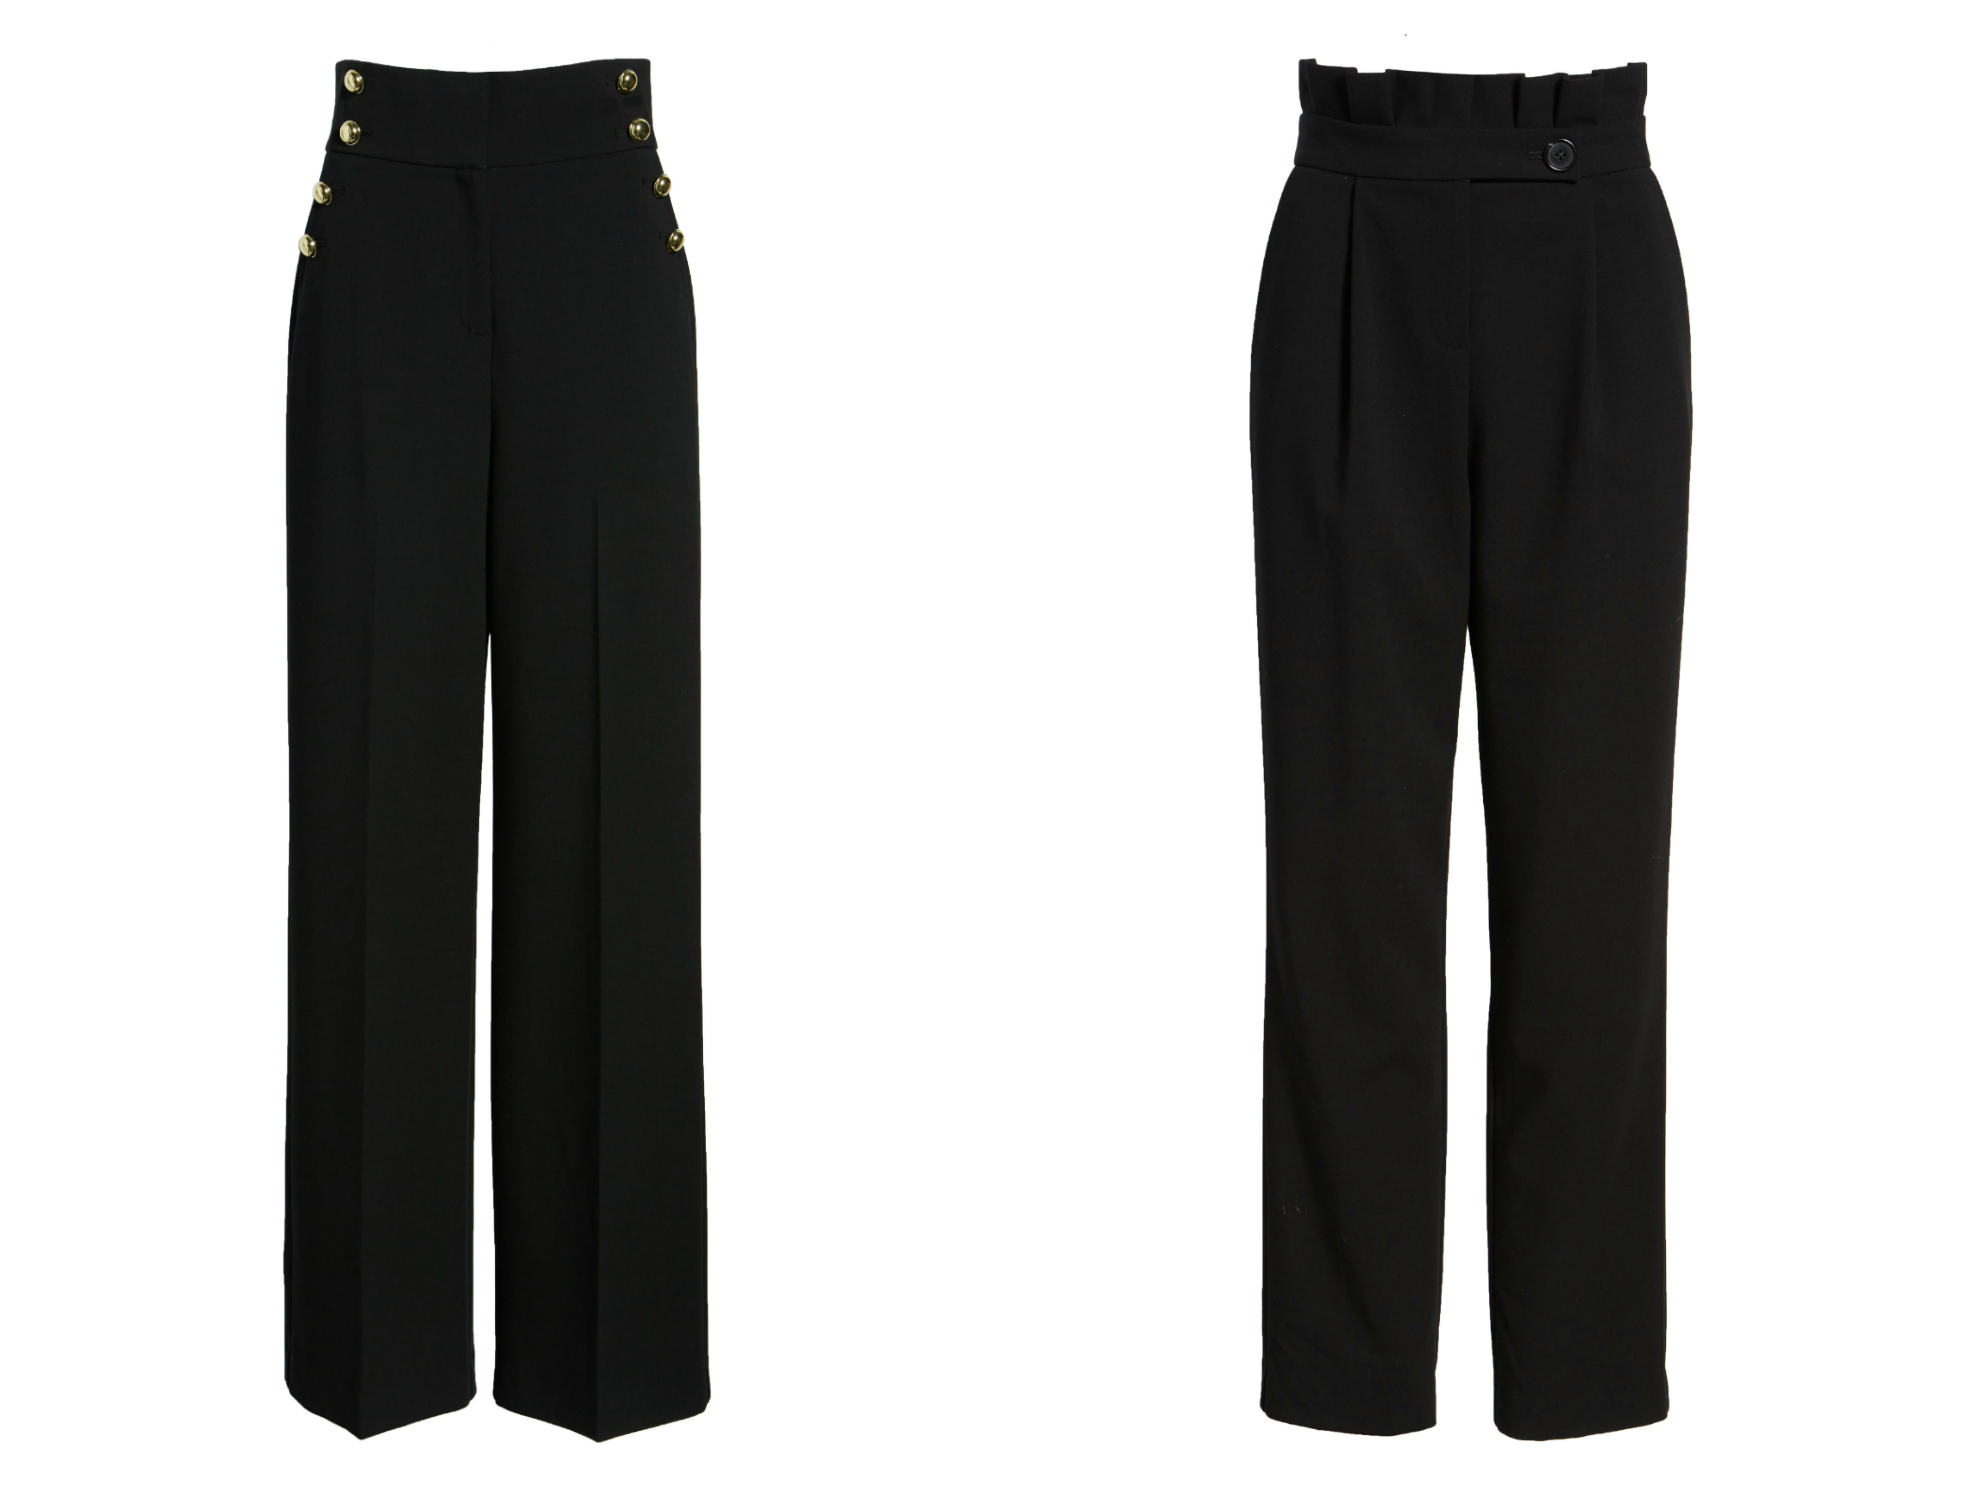 772063ca93 THE BLACK PANTS // $99 (wide leg) $89 (ankle pant) // The sailor pants are  high waisted, with a wide leg, and run true to size! The paperbag pant is  cut to ...